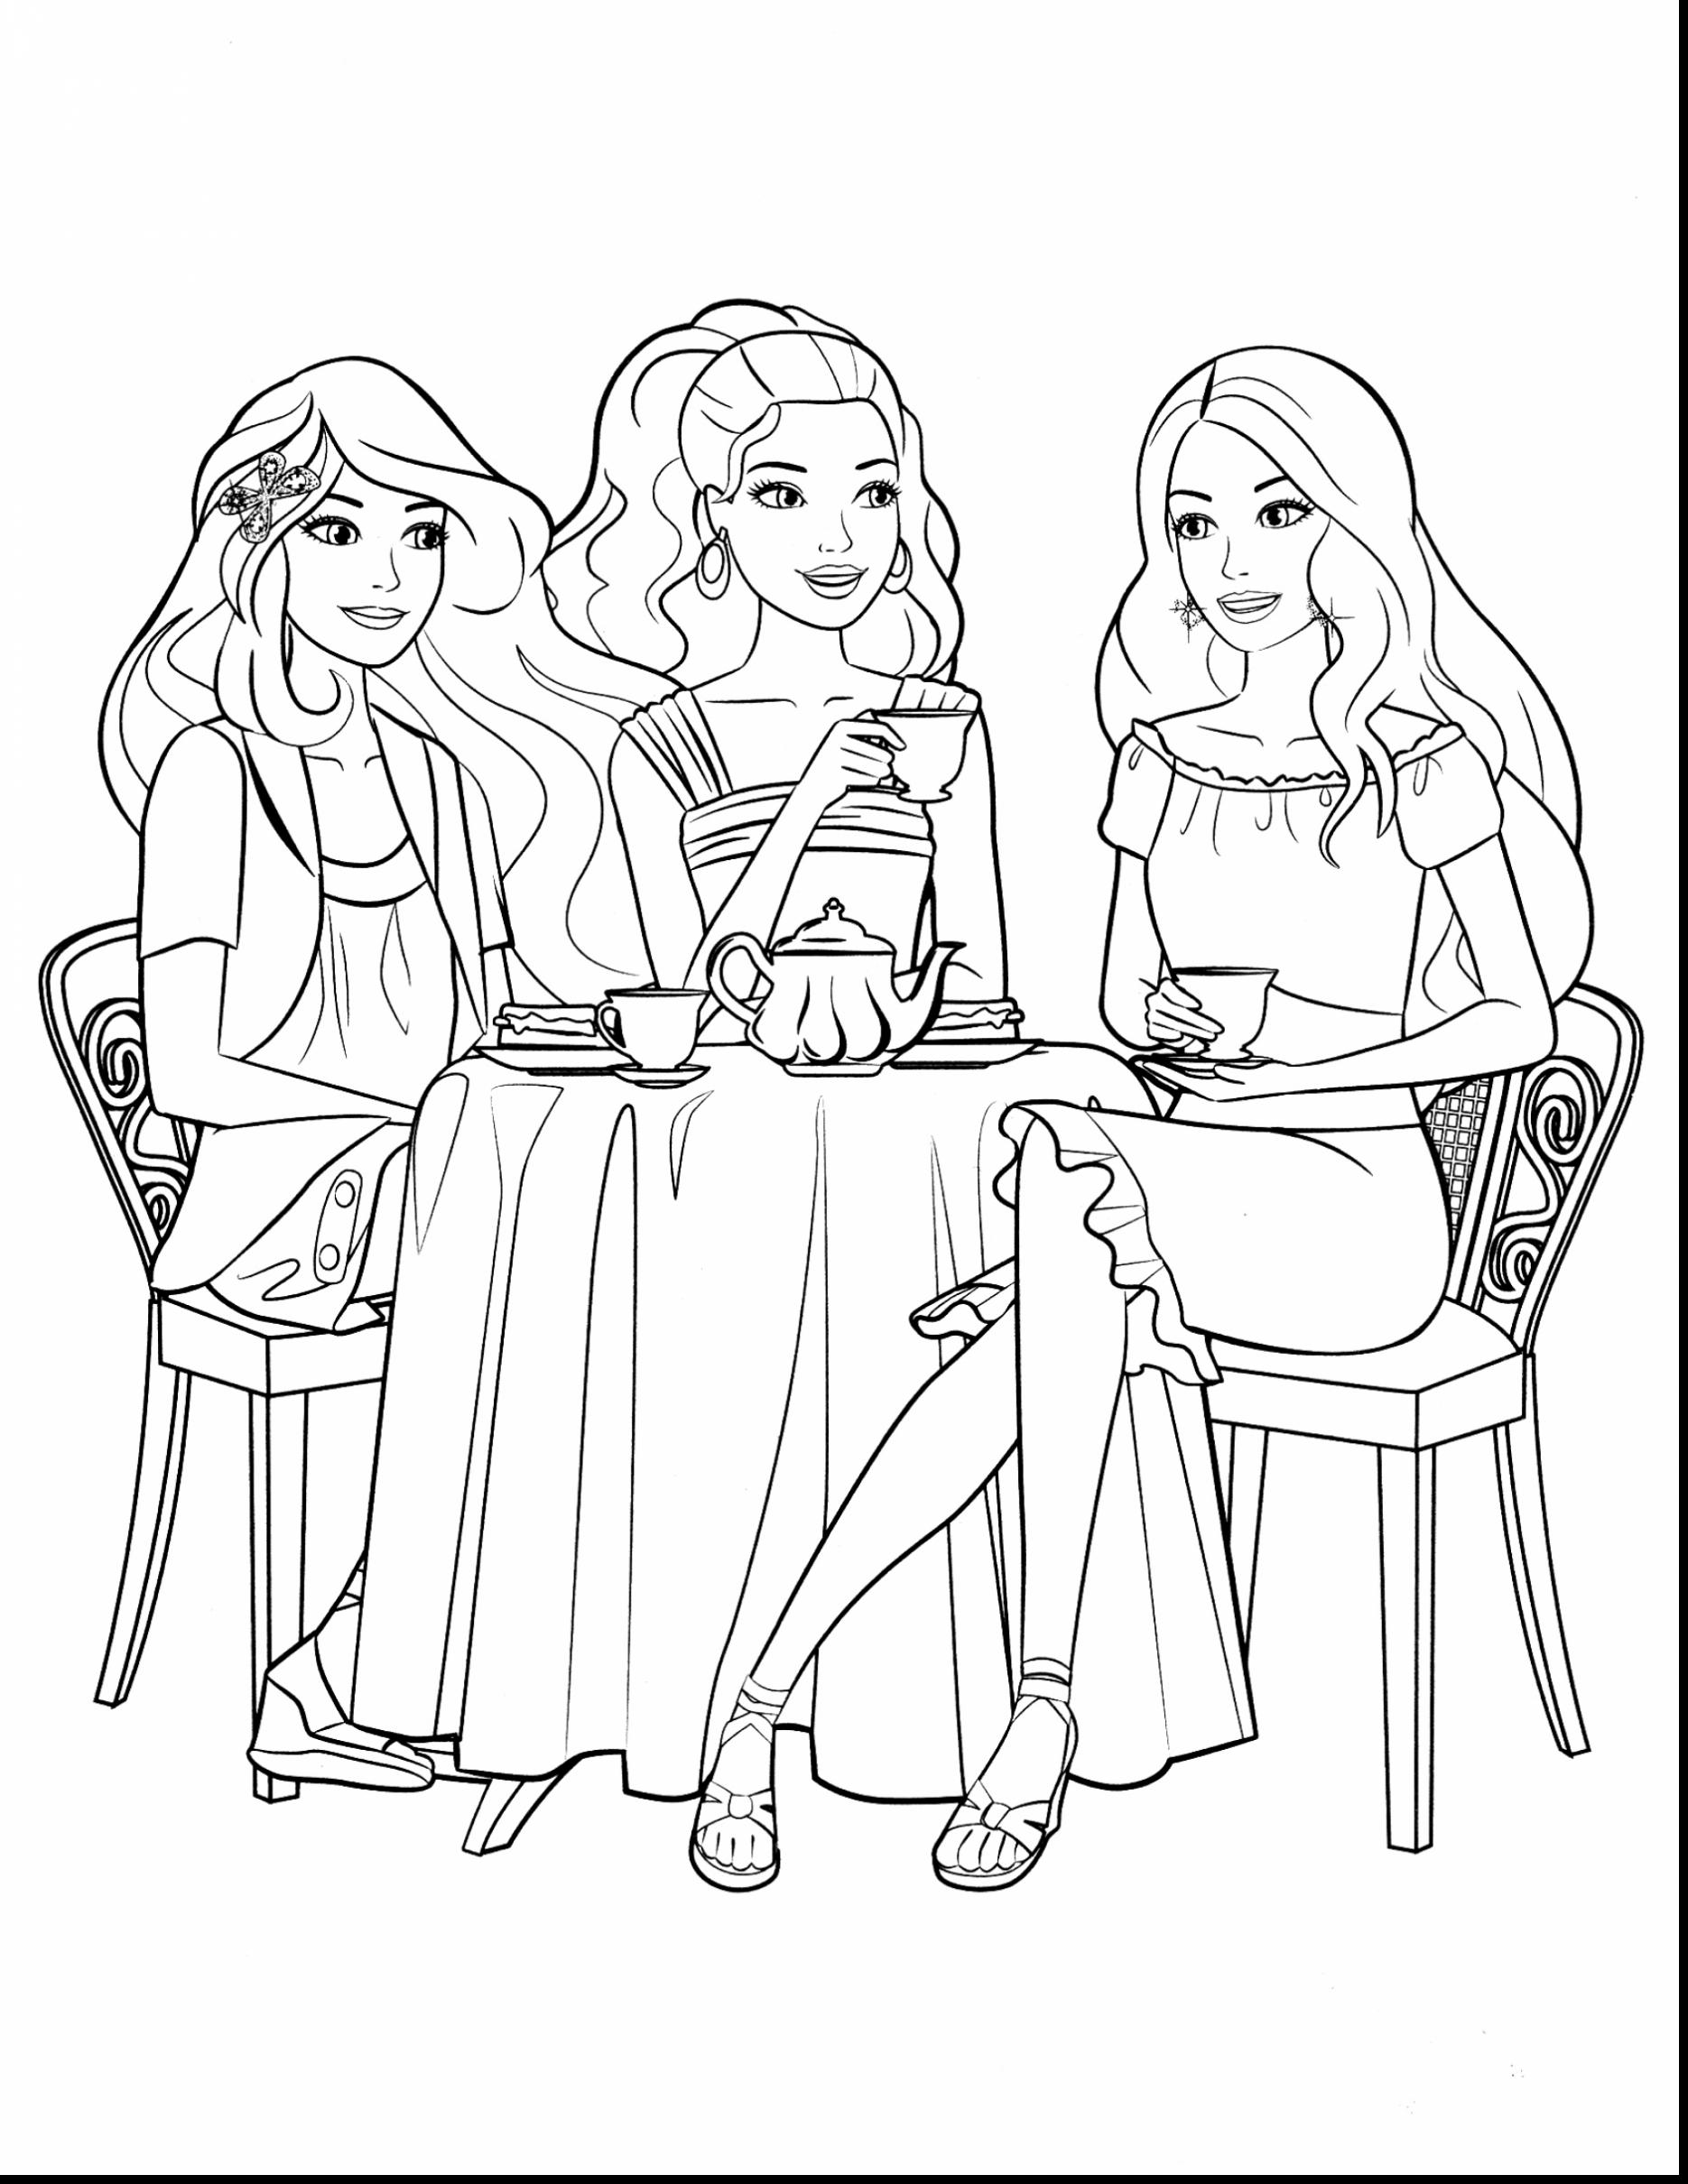 friendship coloring pages mickey mouse friends coloring pages 3 disneyclipscom friendship coloring pages